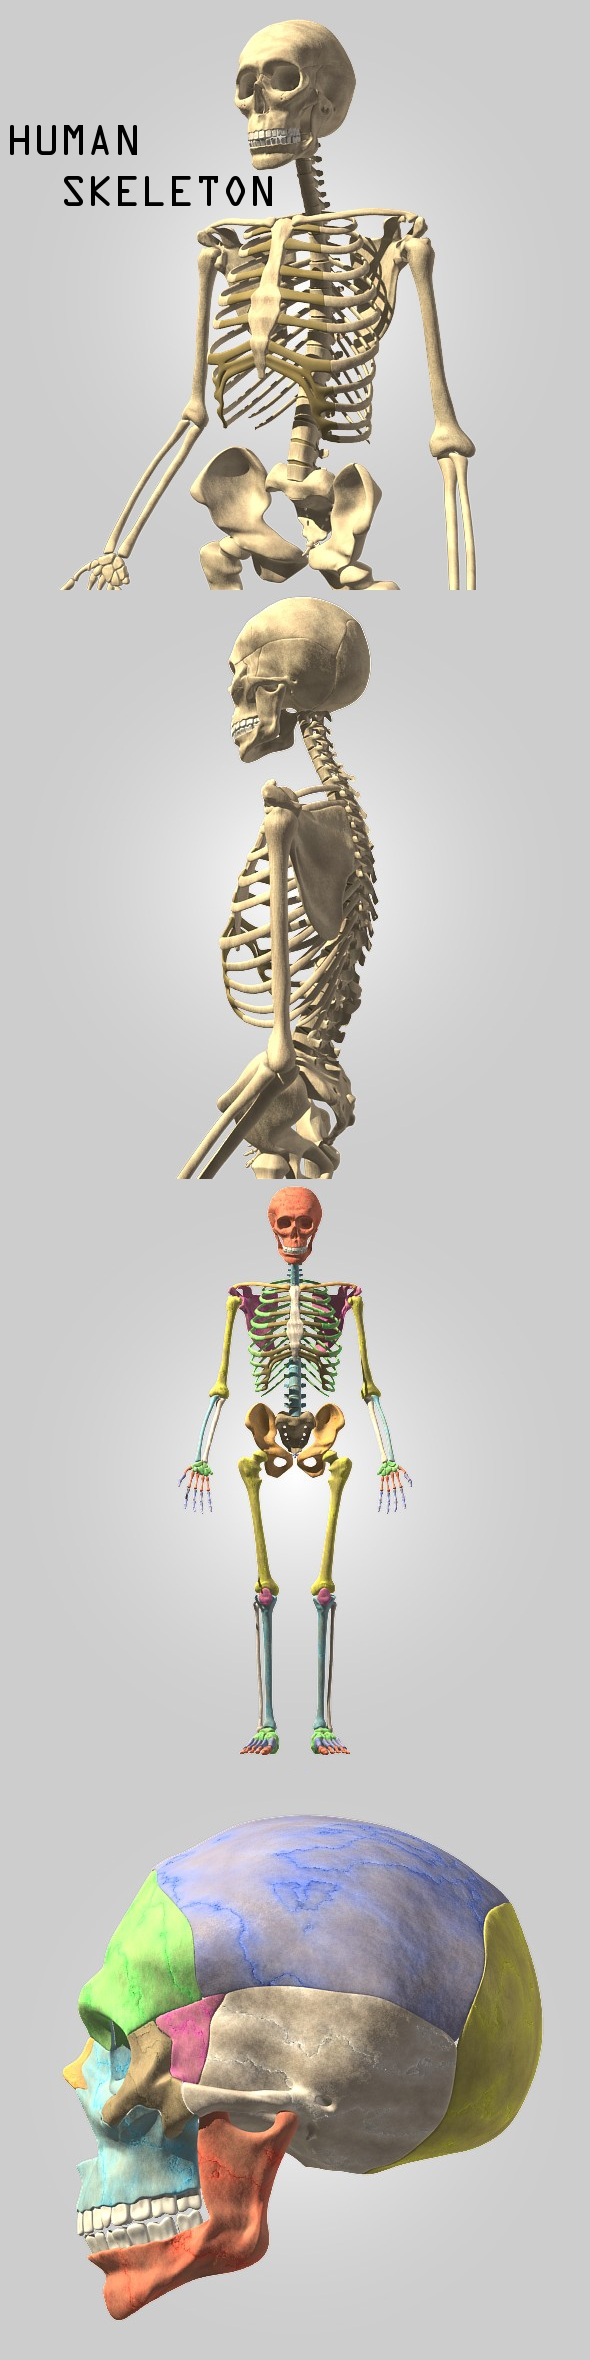 Human skeleton - 3DOcean Item for Sale